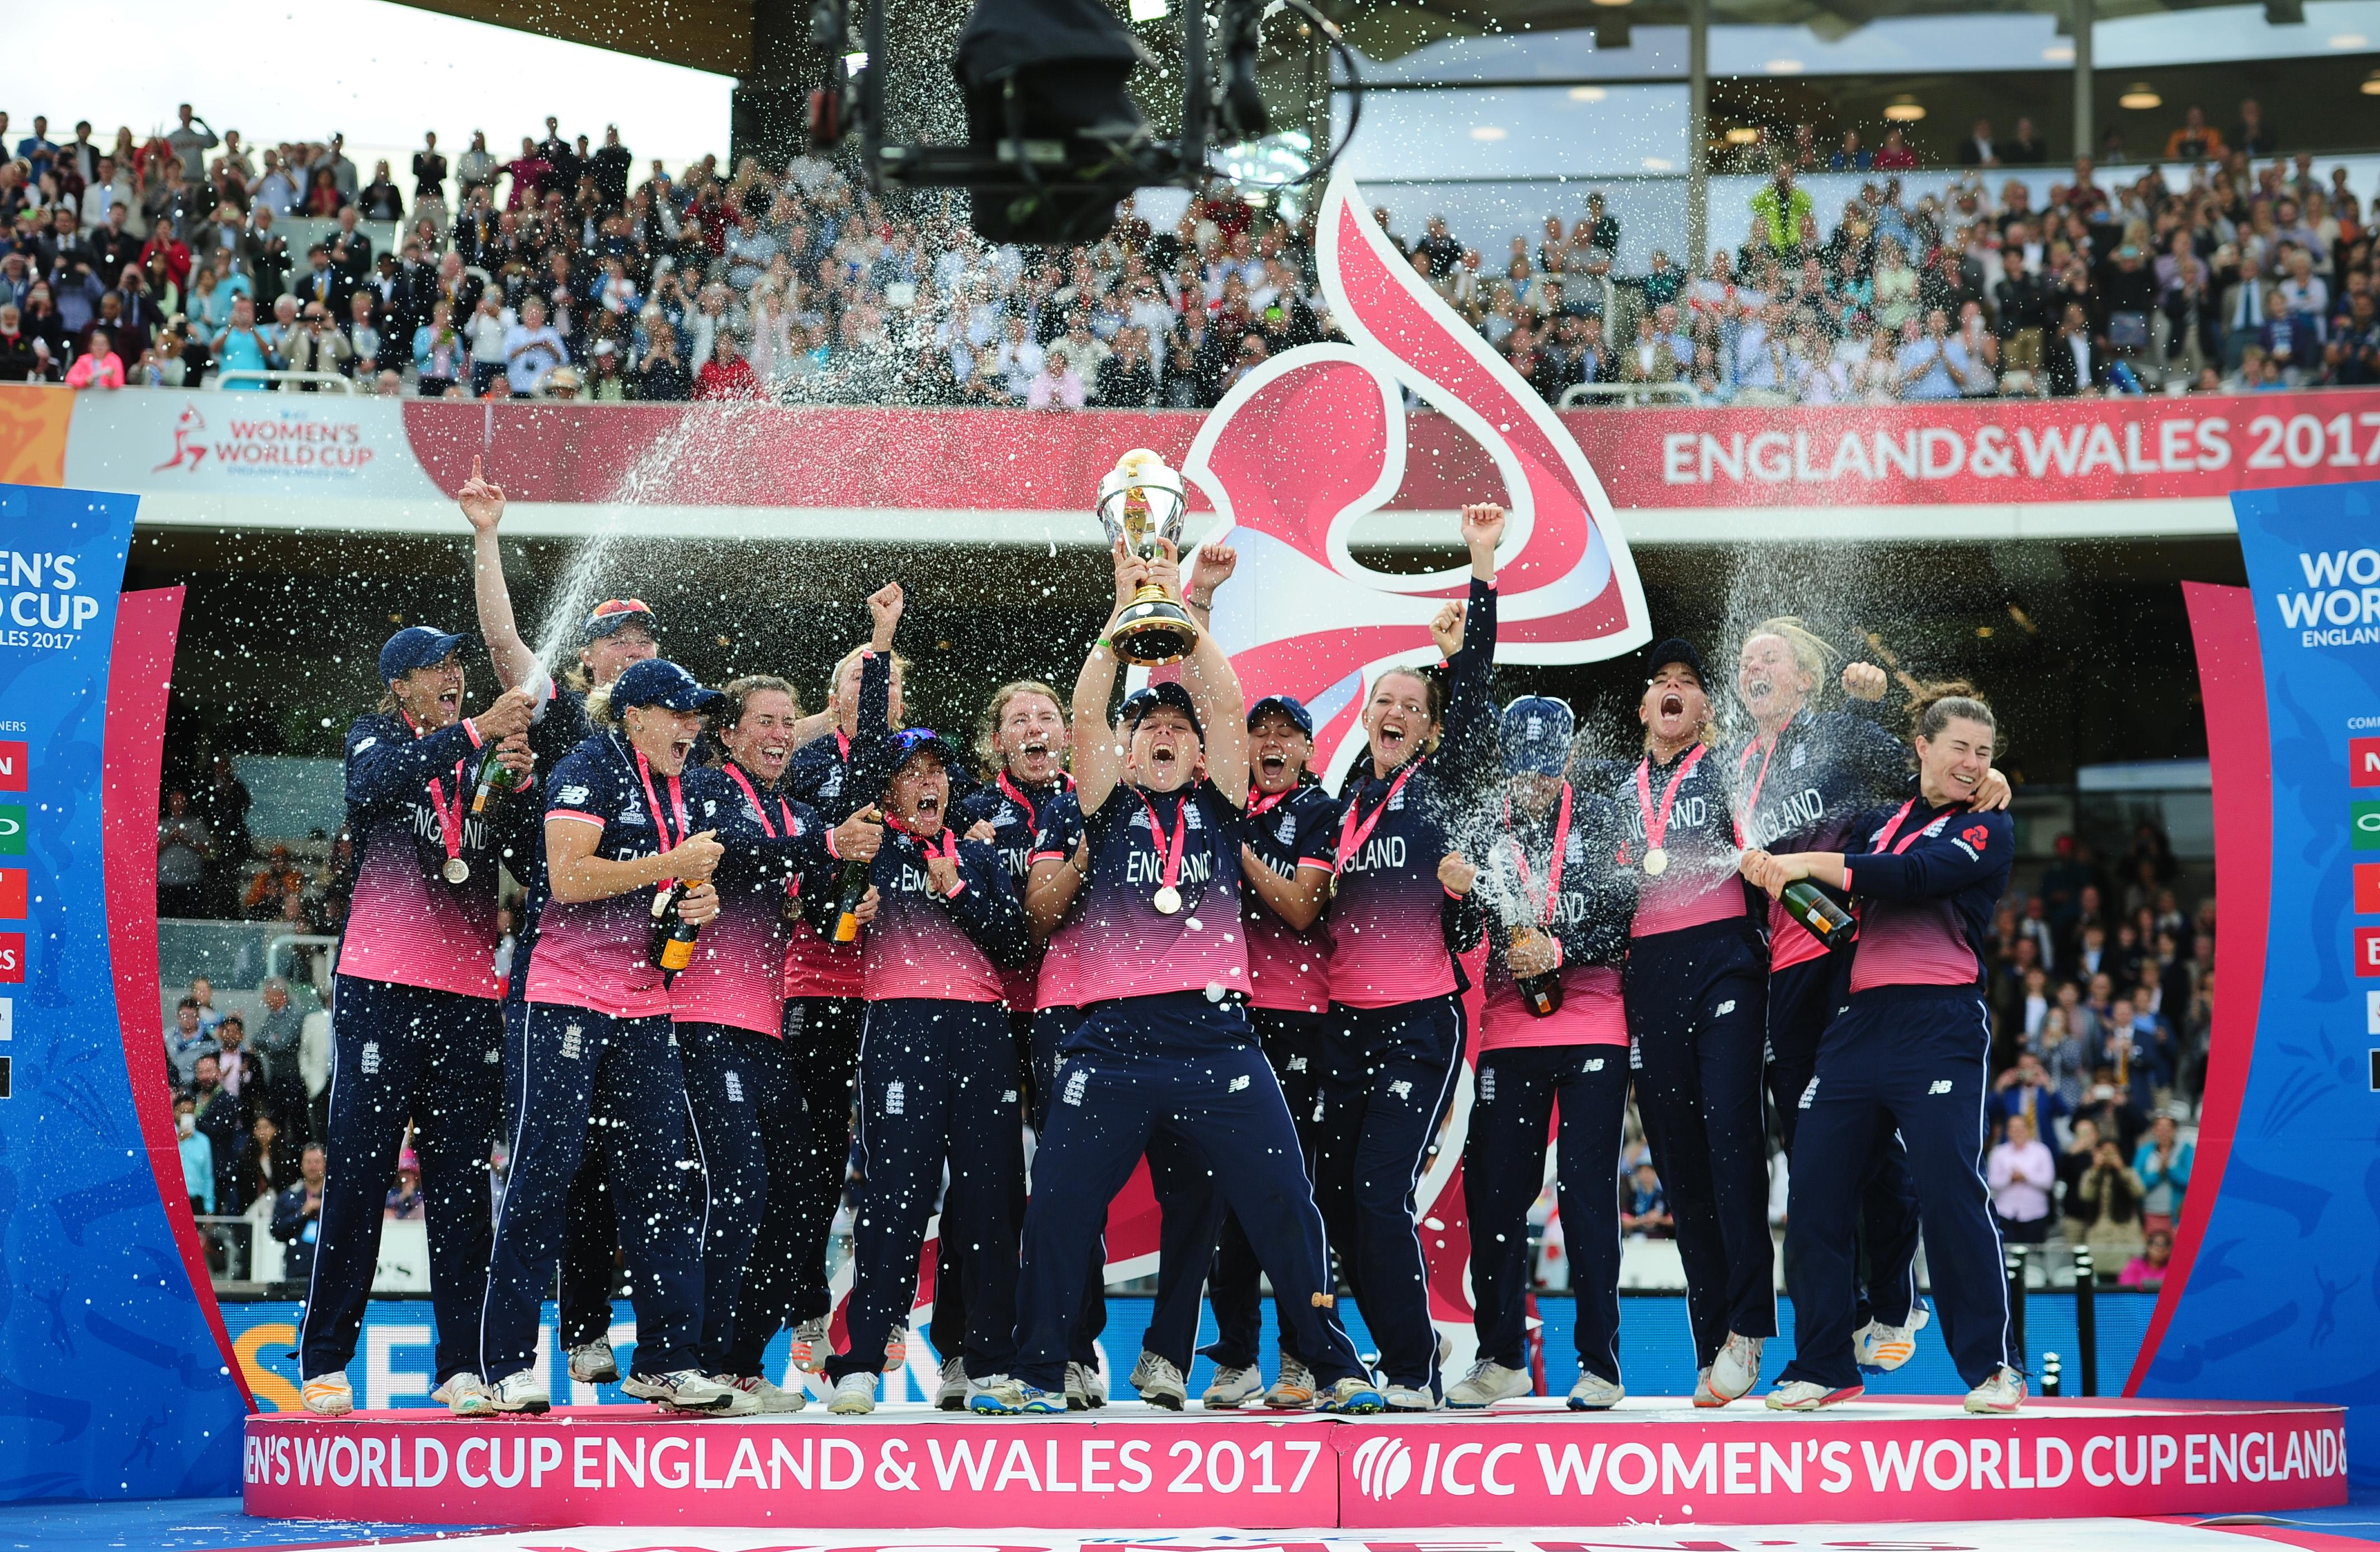 Icc U19 World Cup Records Over The Past Years: History Made In Record-breaking ICC Women's World Cup